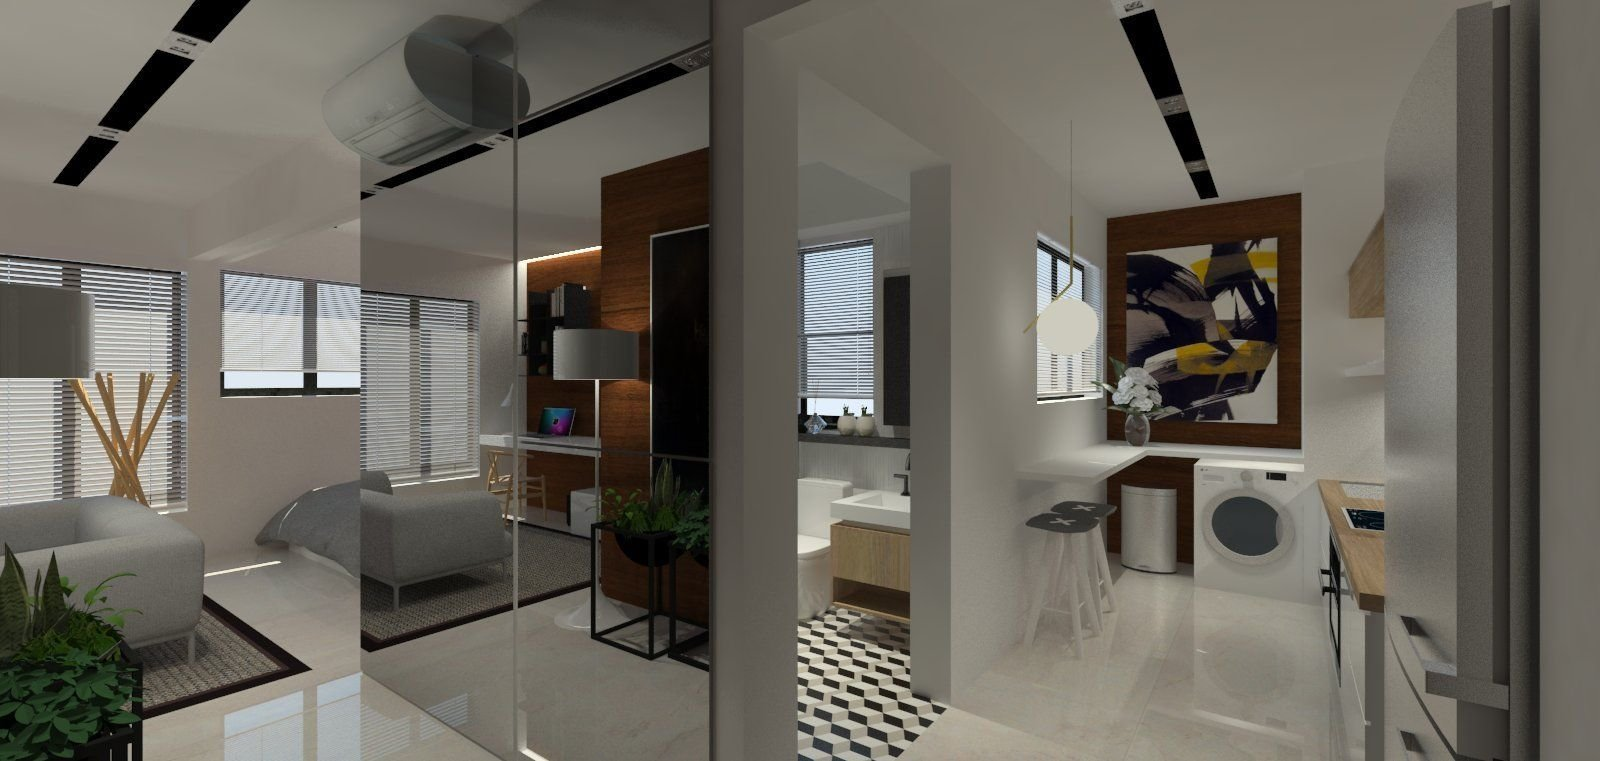 Best Hdb 2 Room Bto For Singles 47Sqm Apartment Interior Design Conceived By The Owner Of This With Pictures